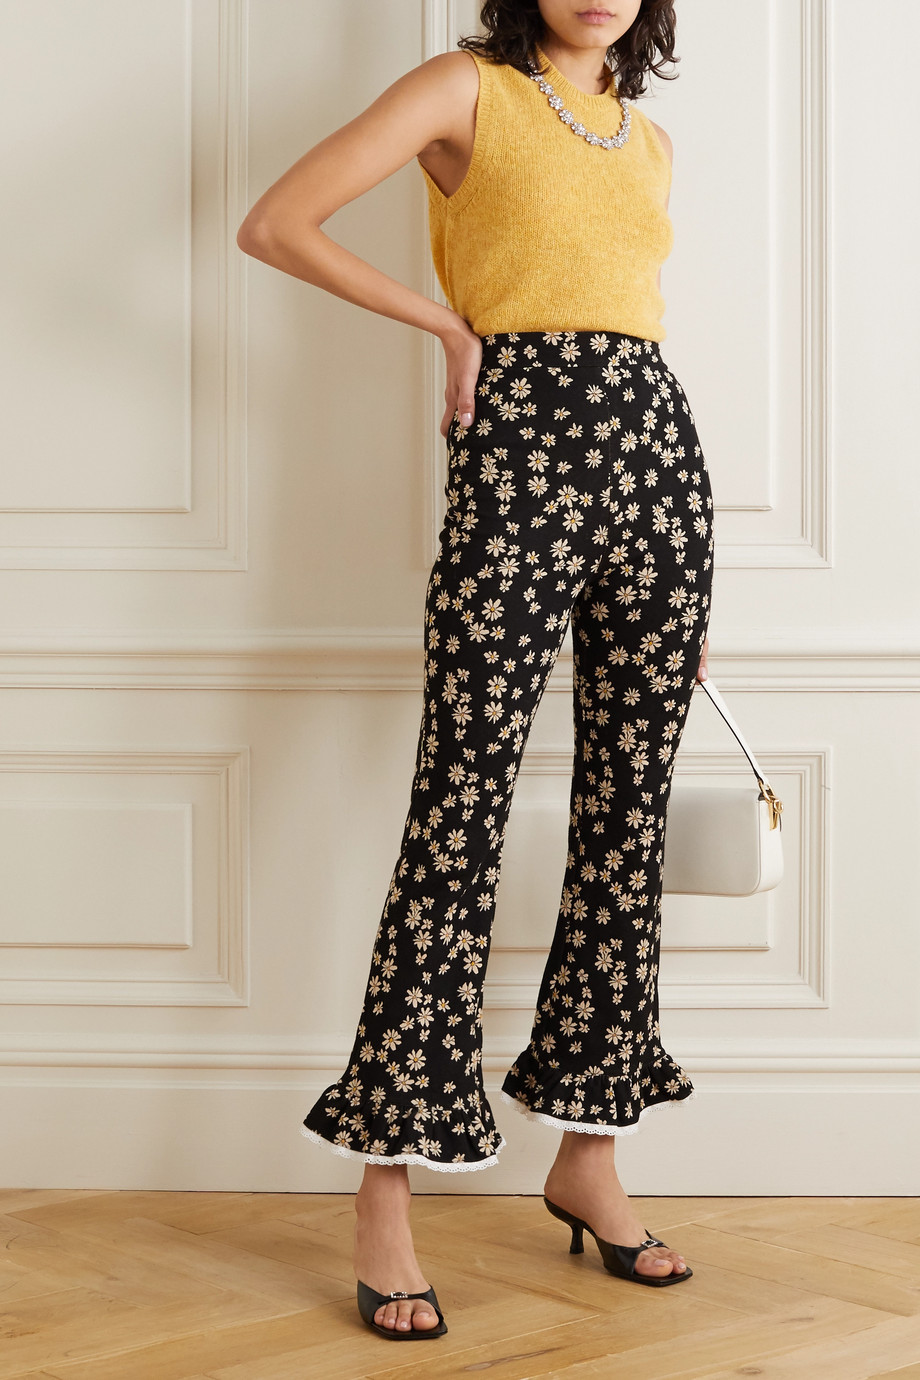 Miu Miu Lace-trimmed jacquard-knit flared pants